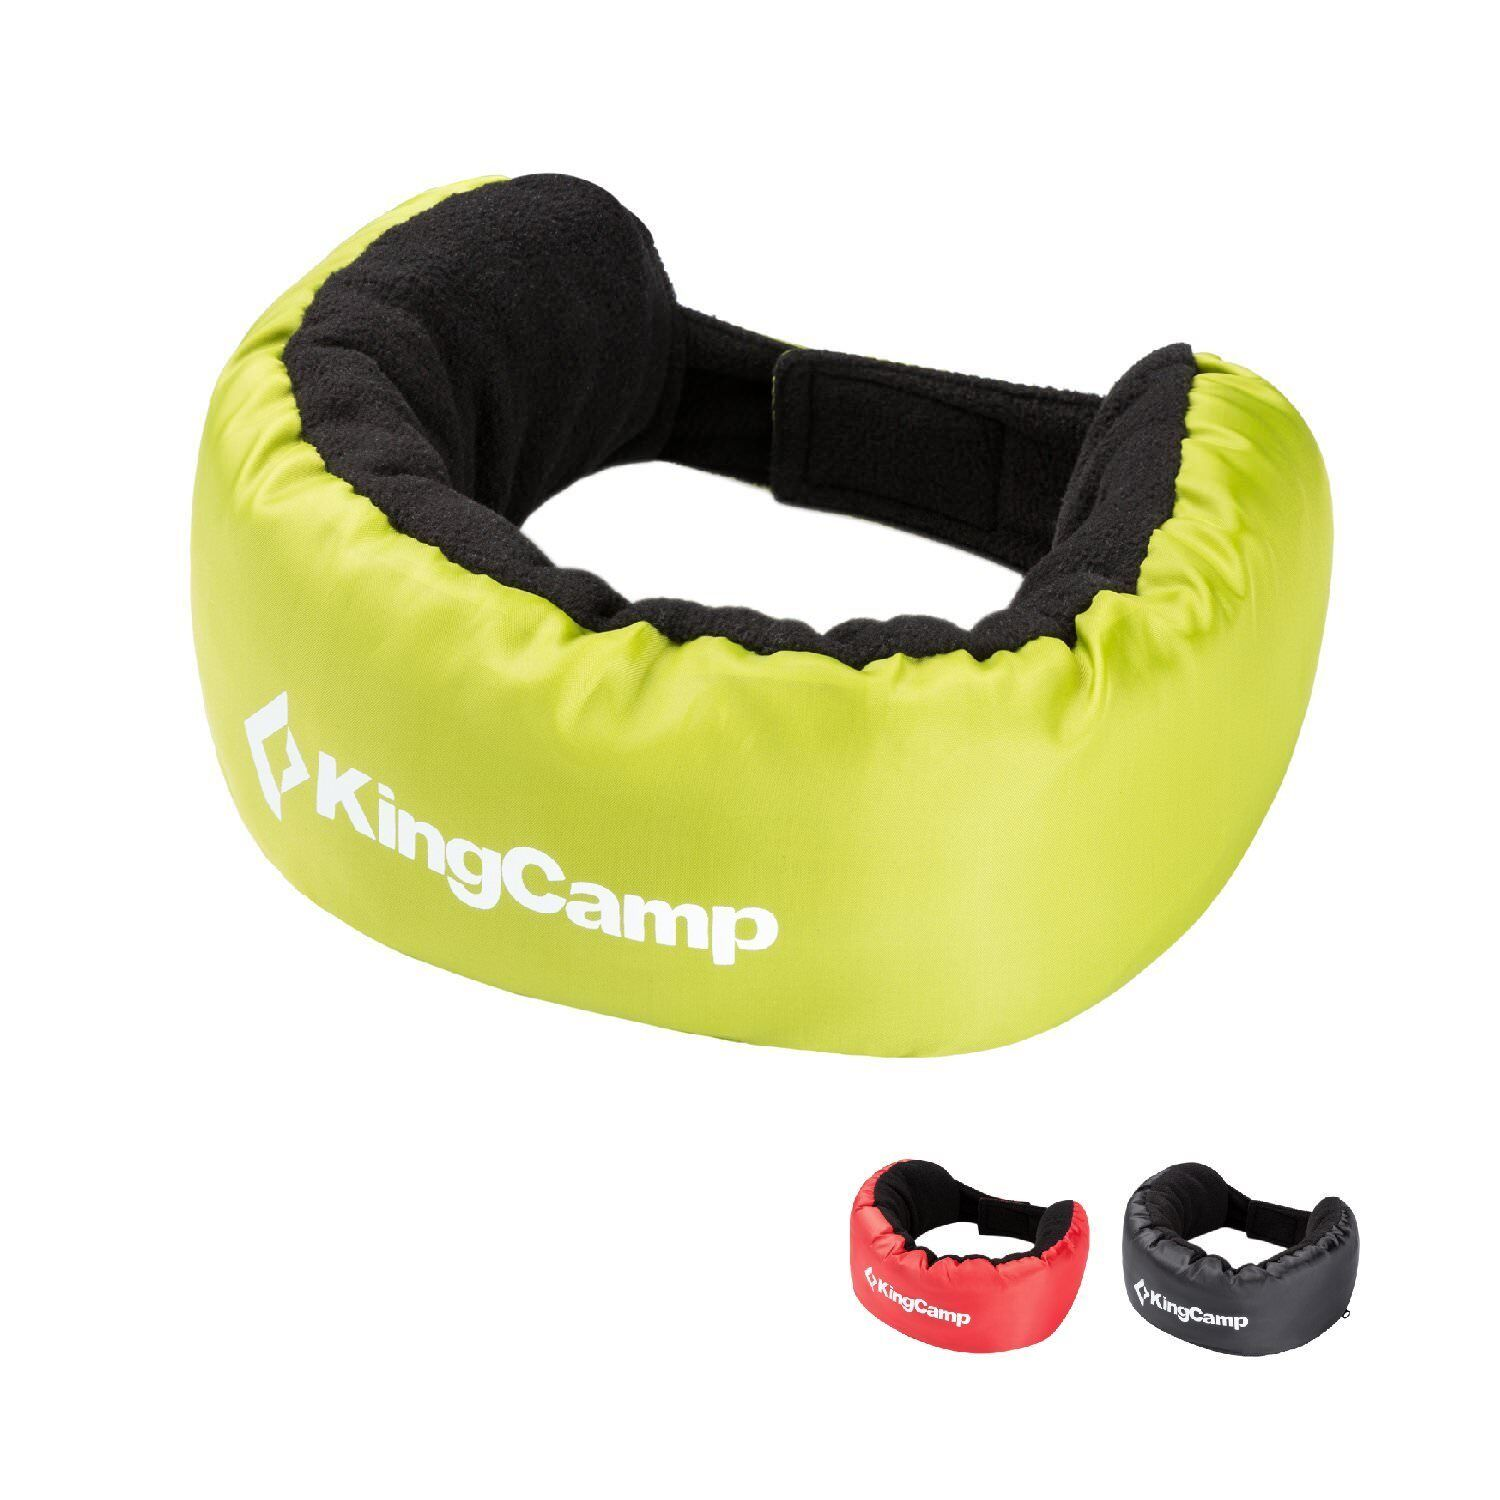 Neck Pillow For Car Travel Airplane Blanket Kids Adults Men